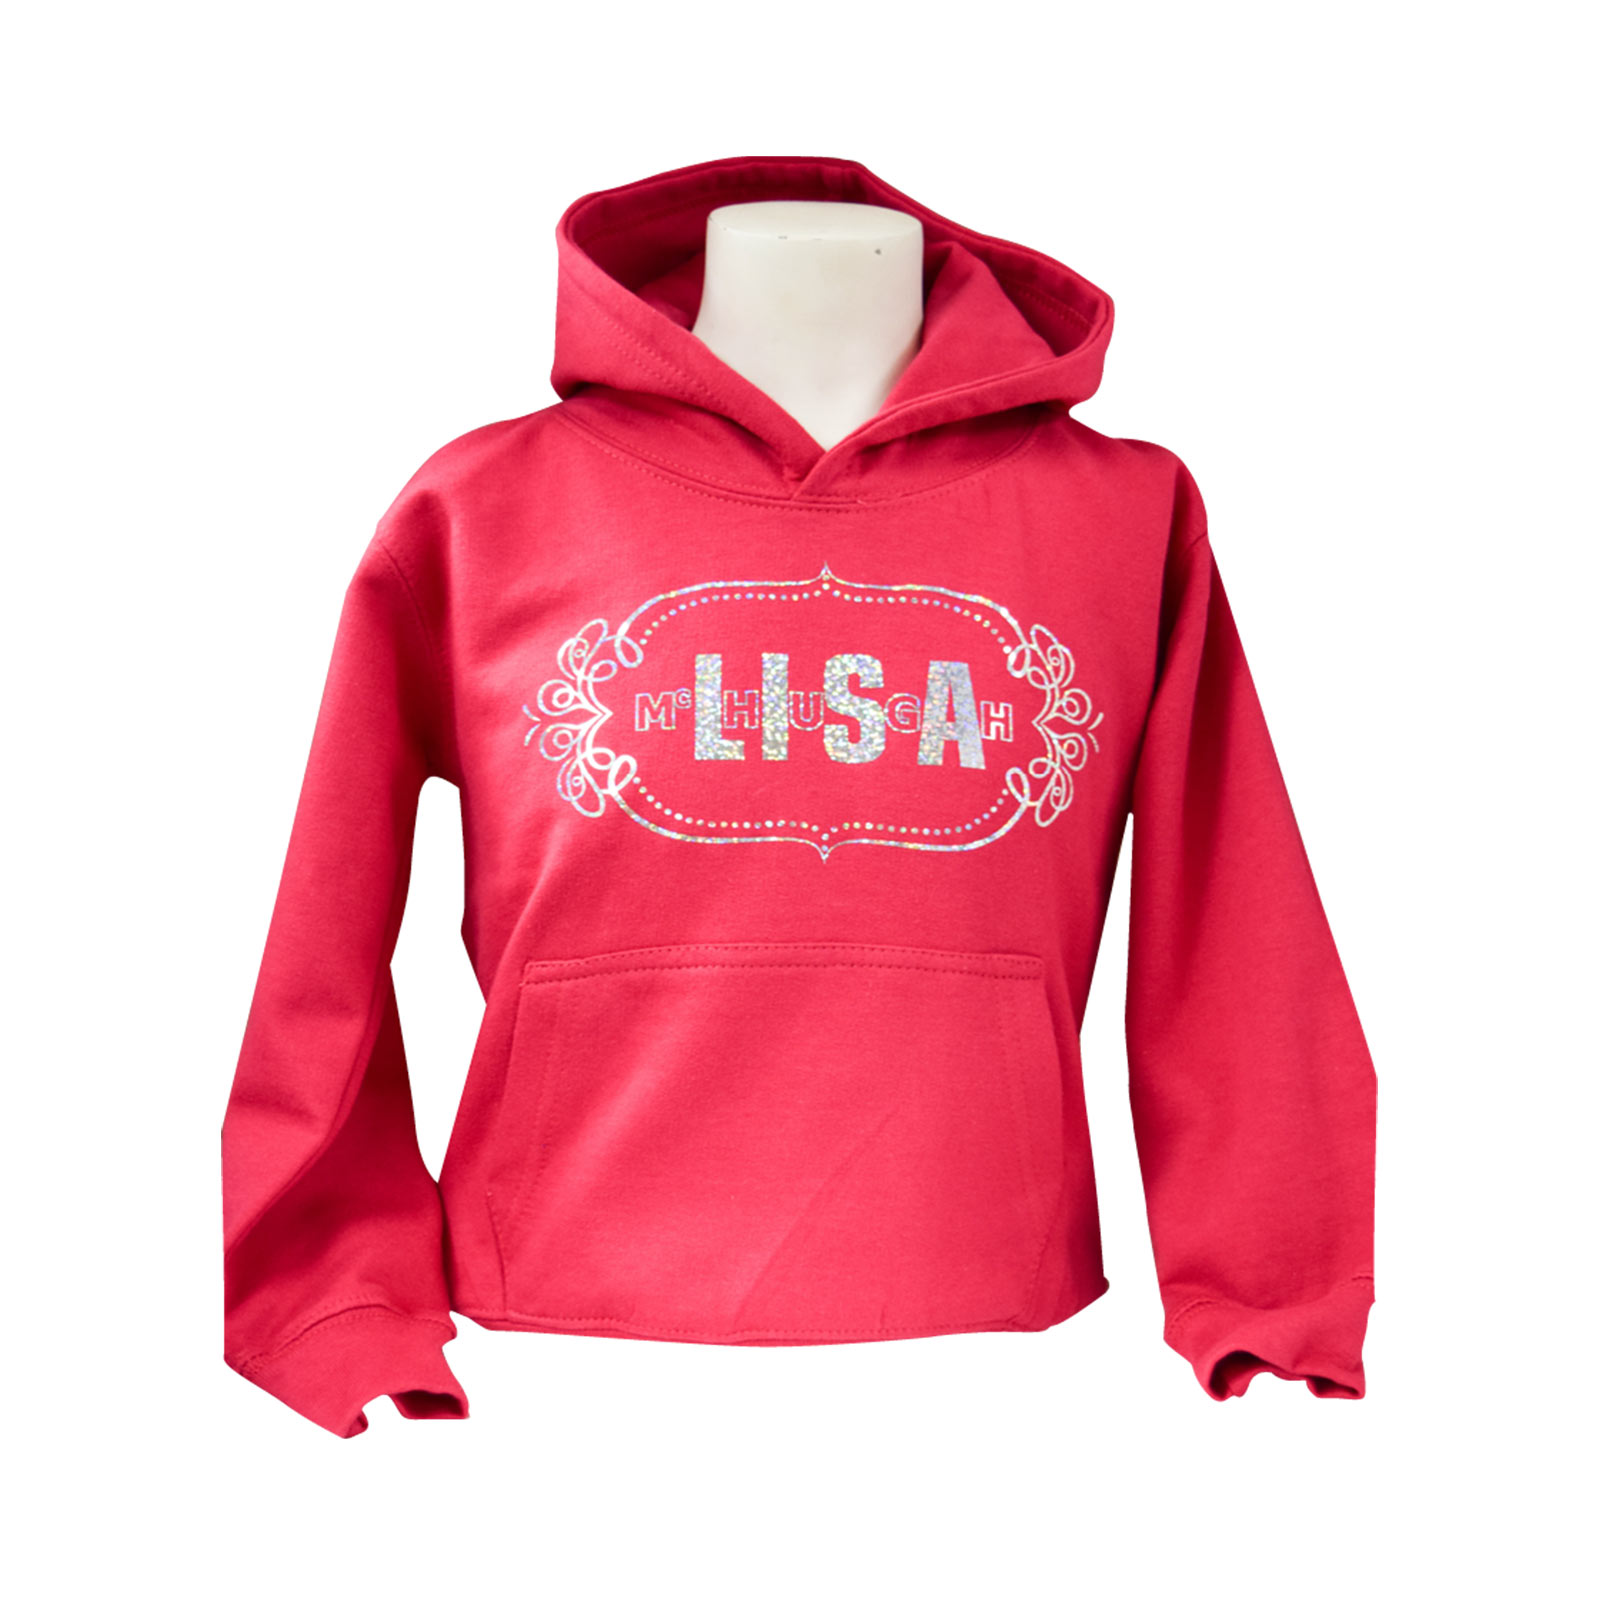 Lisa McHugh kid hoodies red